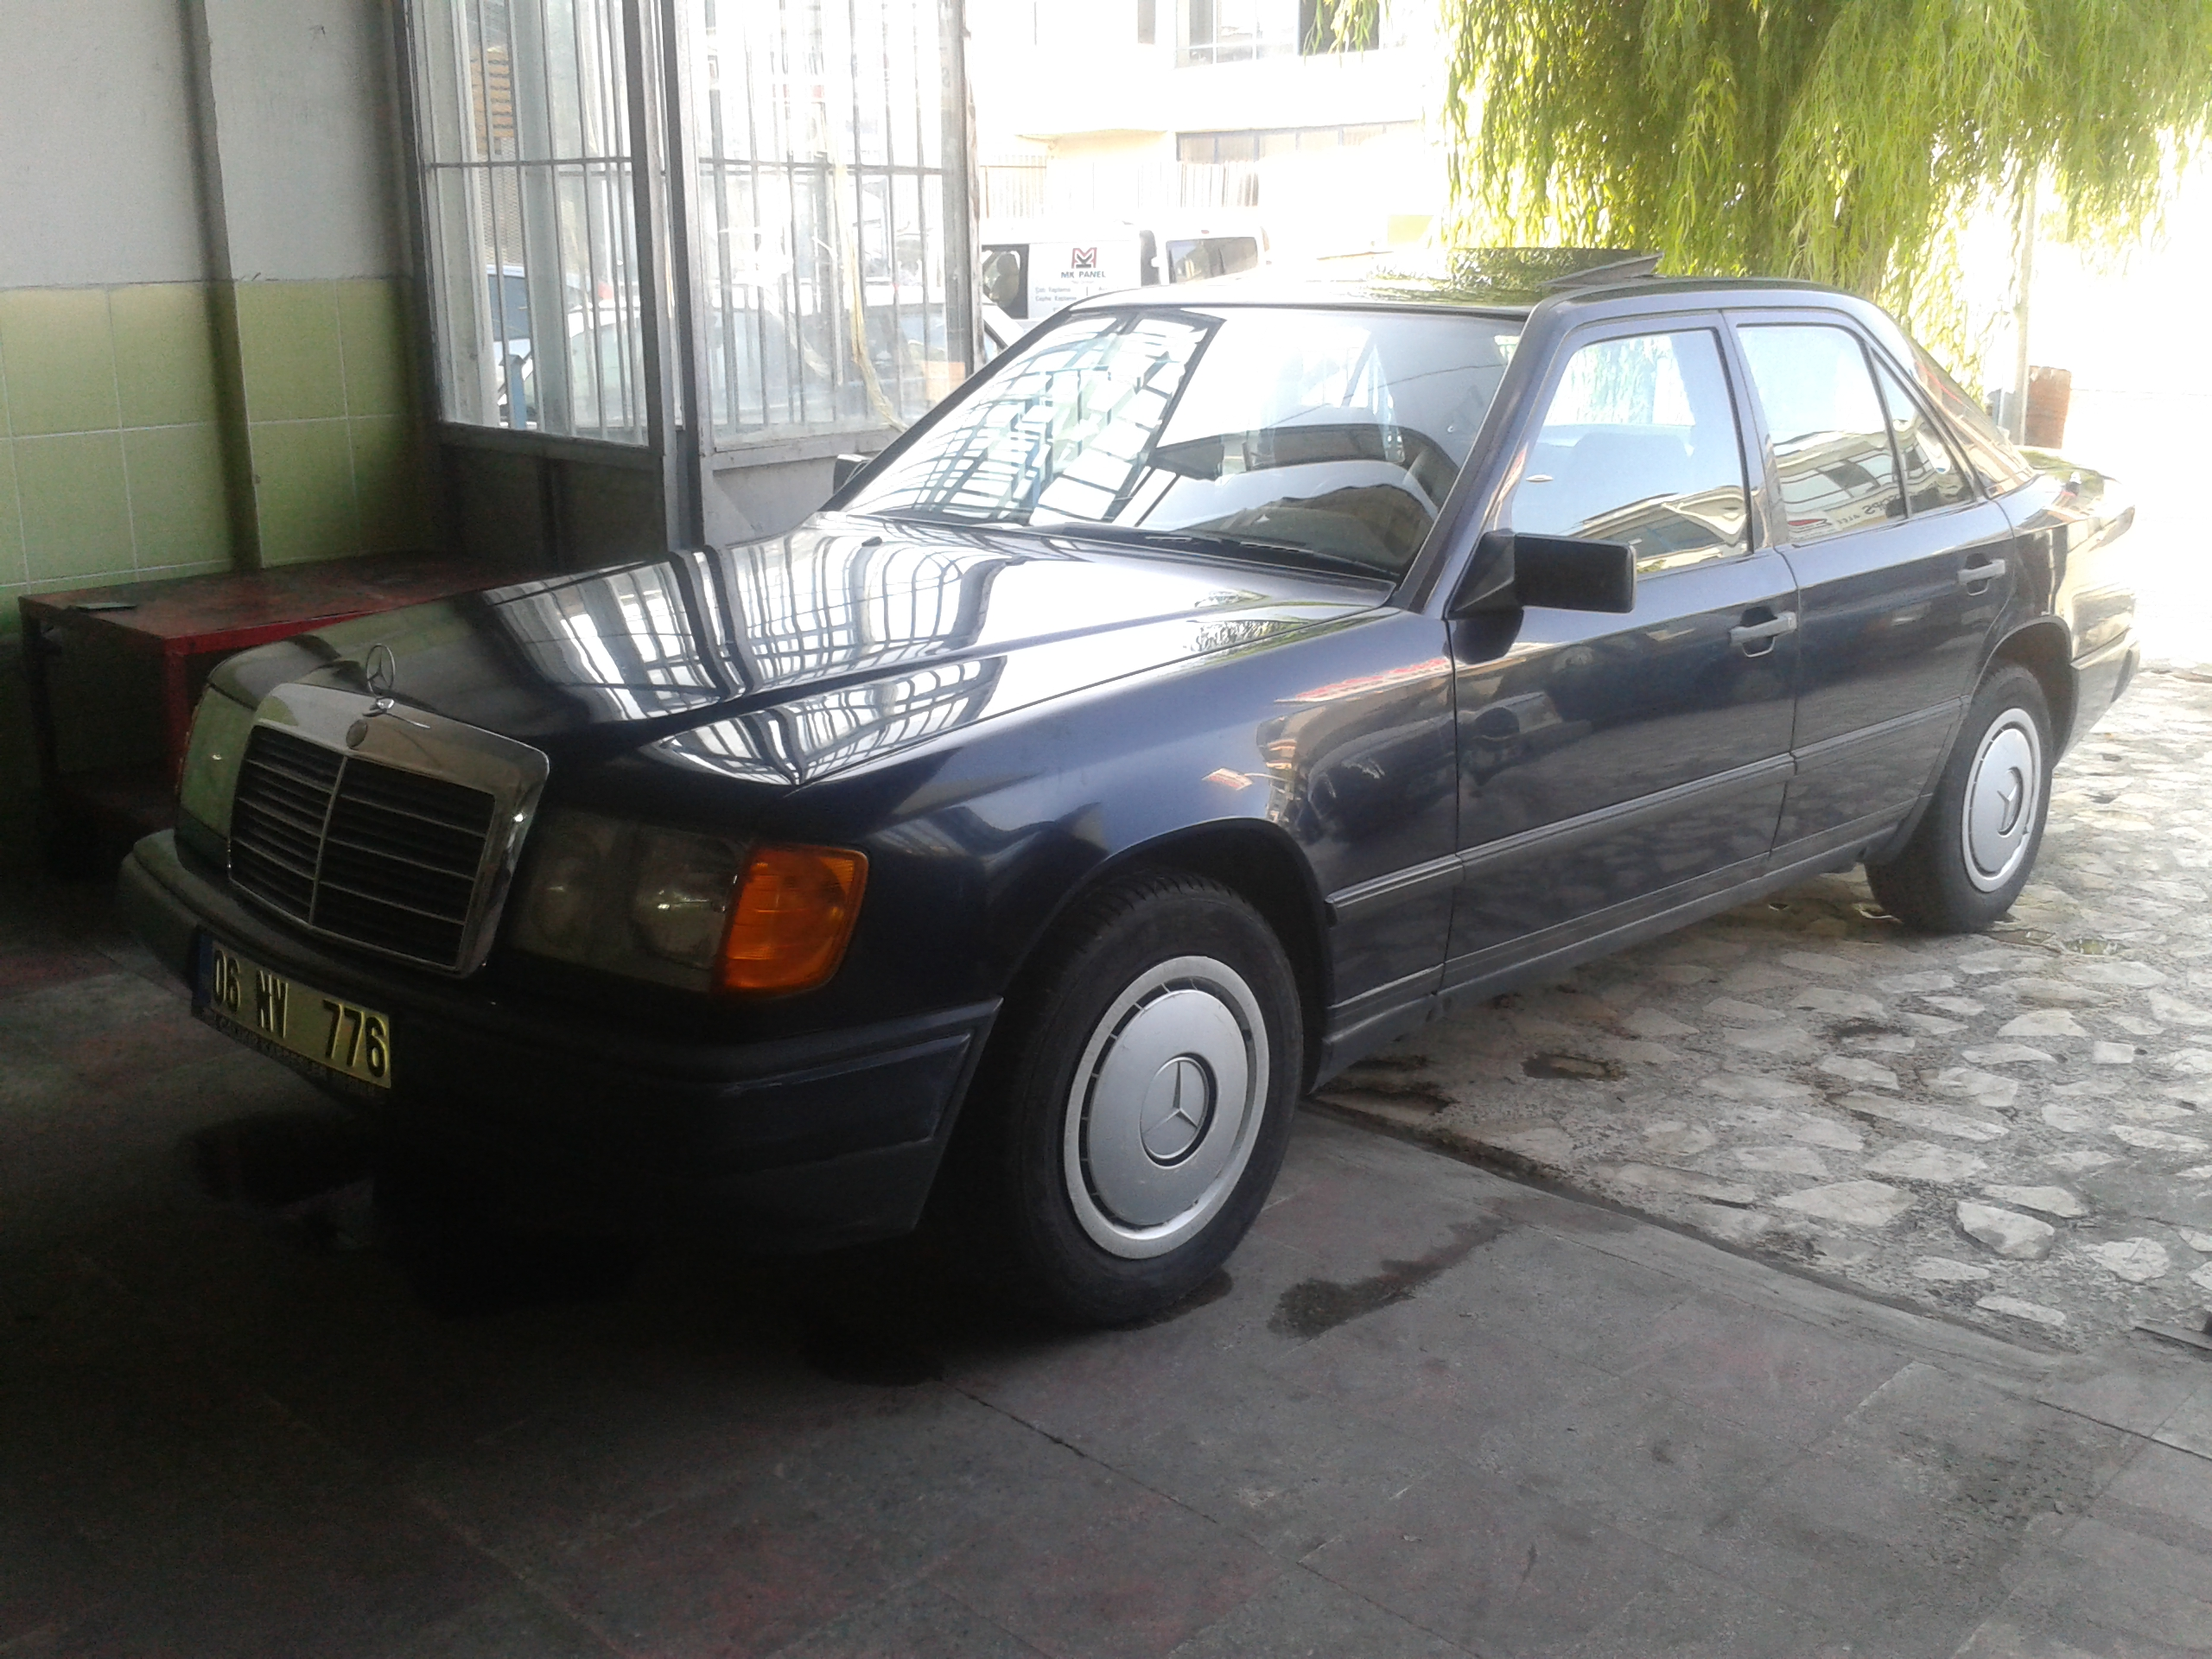 w124 kasa 250 d ve 300 d tutkunlarıpage 1 of 2